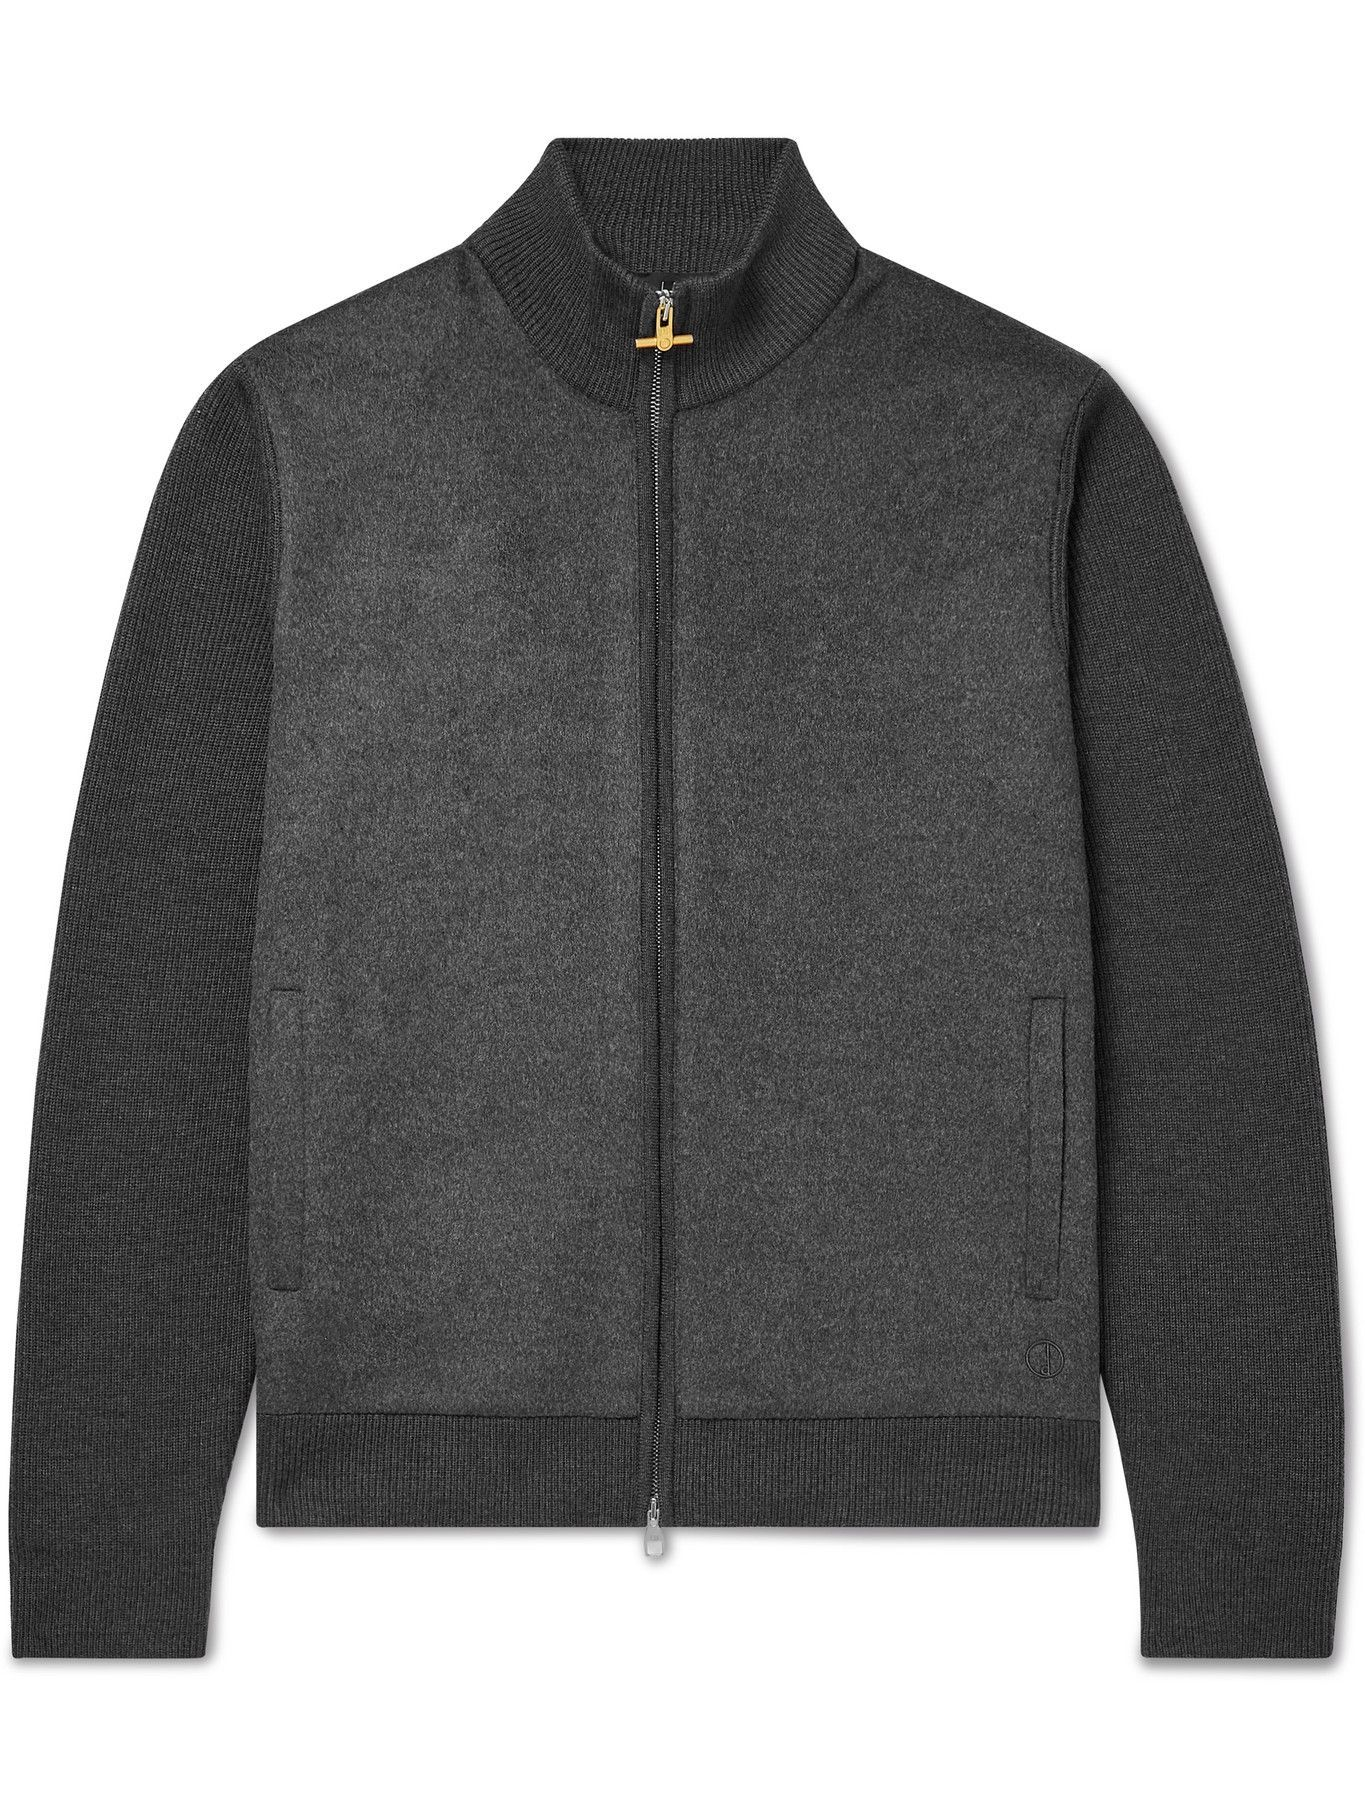 Dunhill - Slim-Fit Panelled Ribbed Merino Wool Jacket - Gray